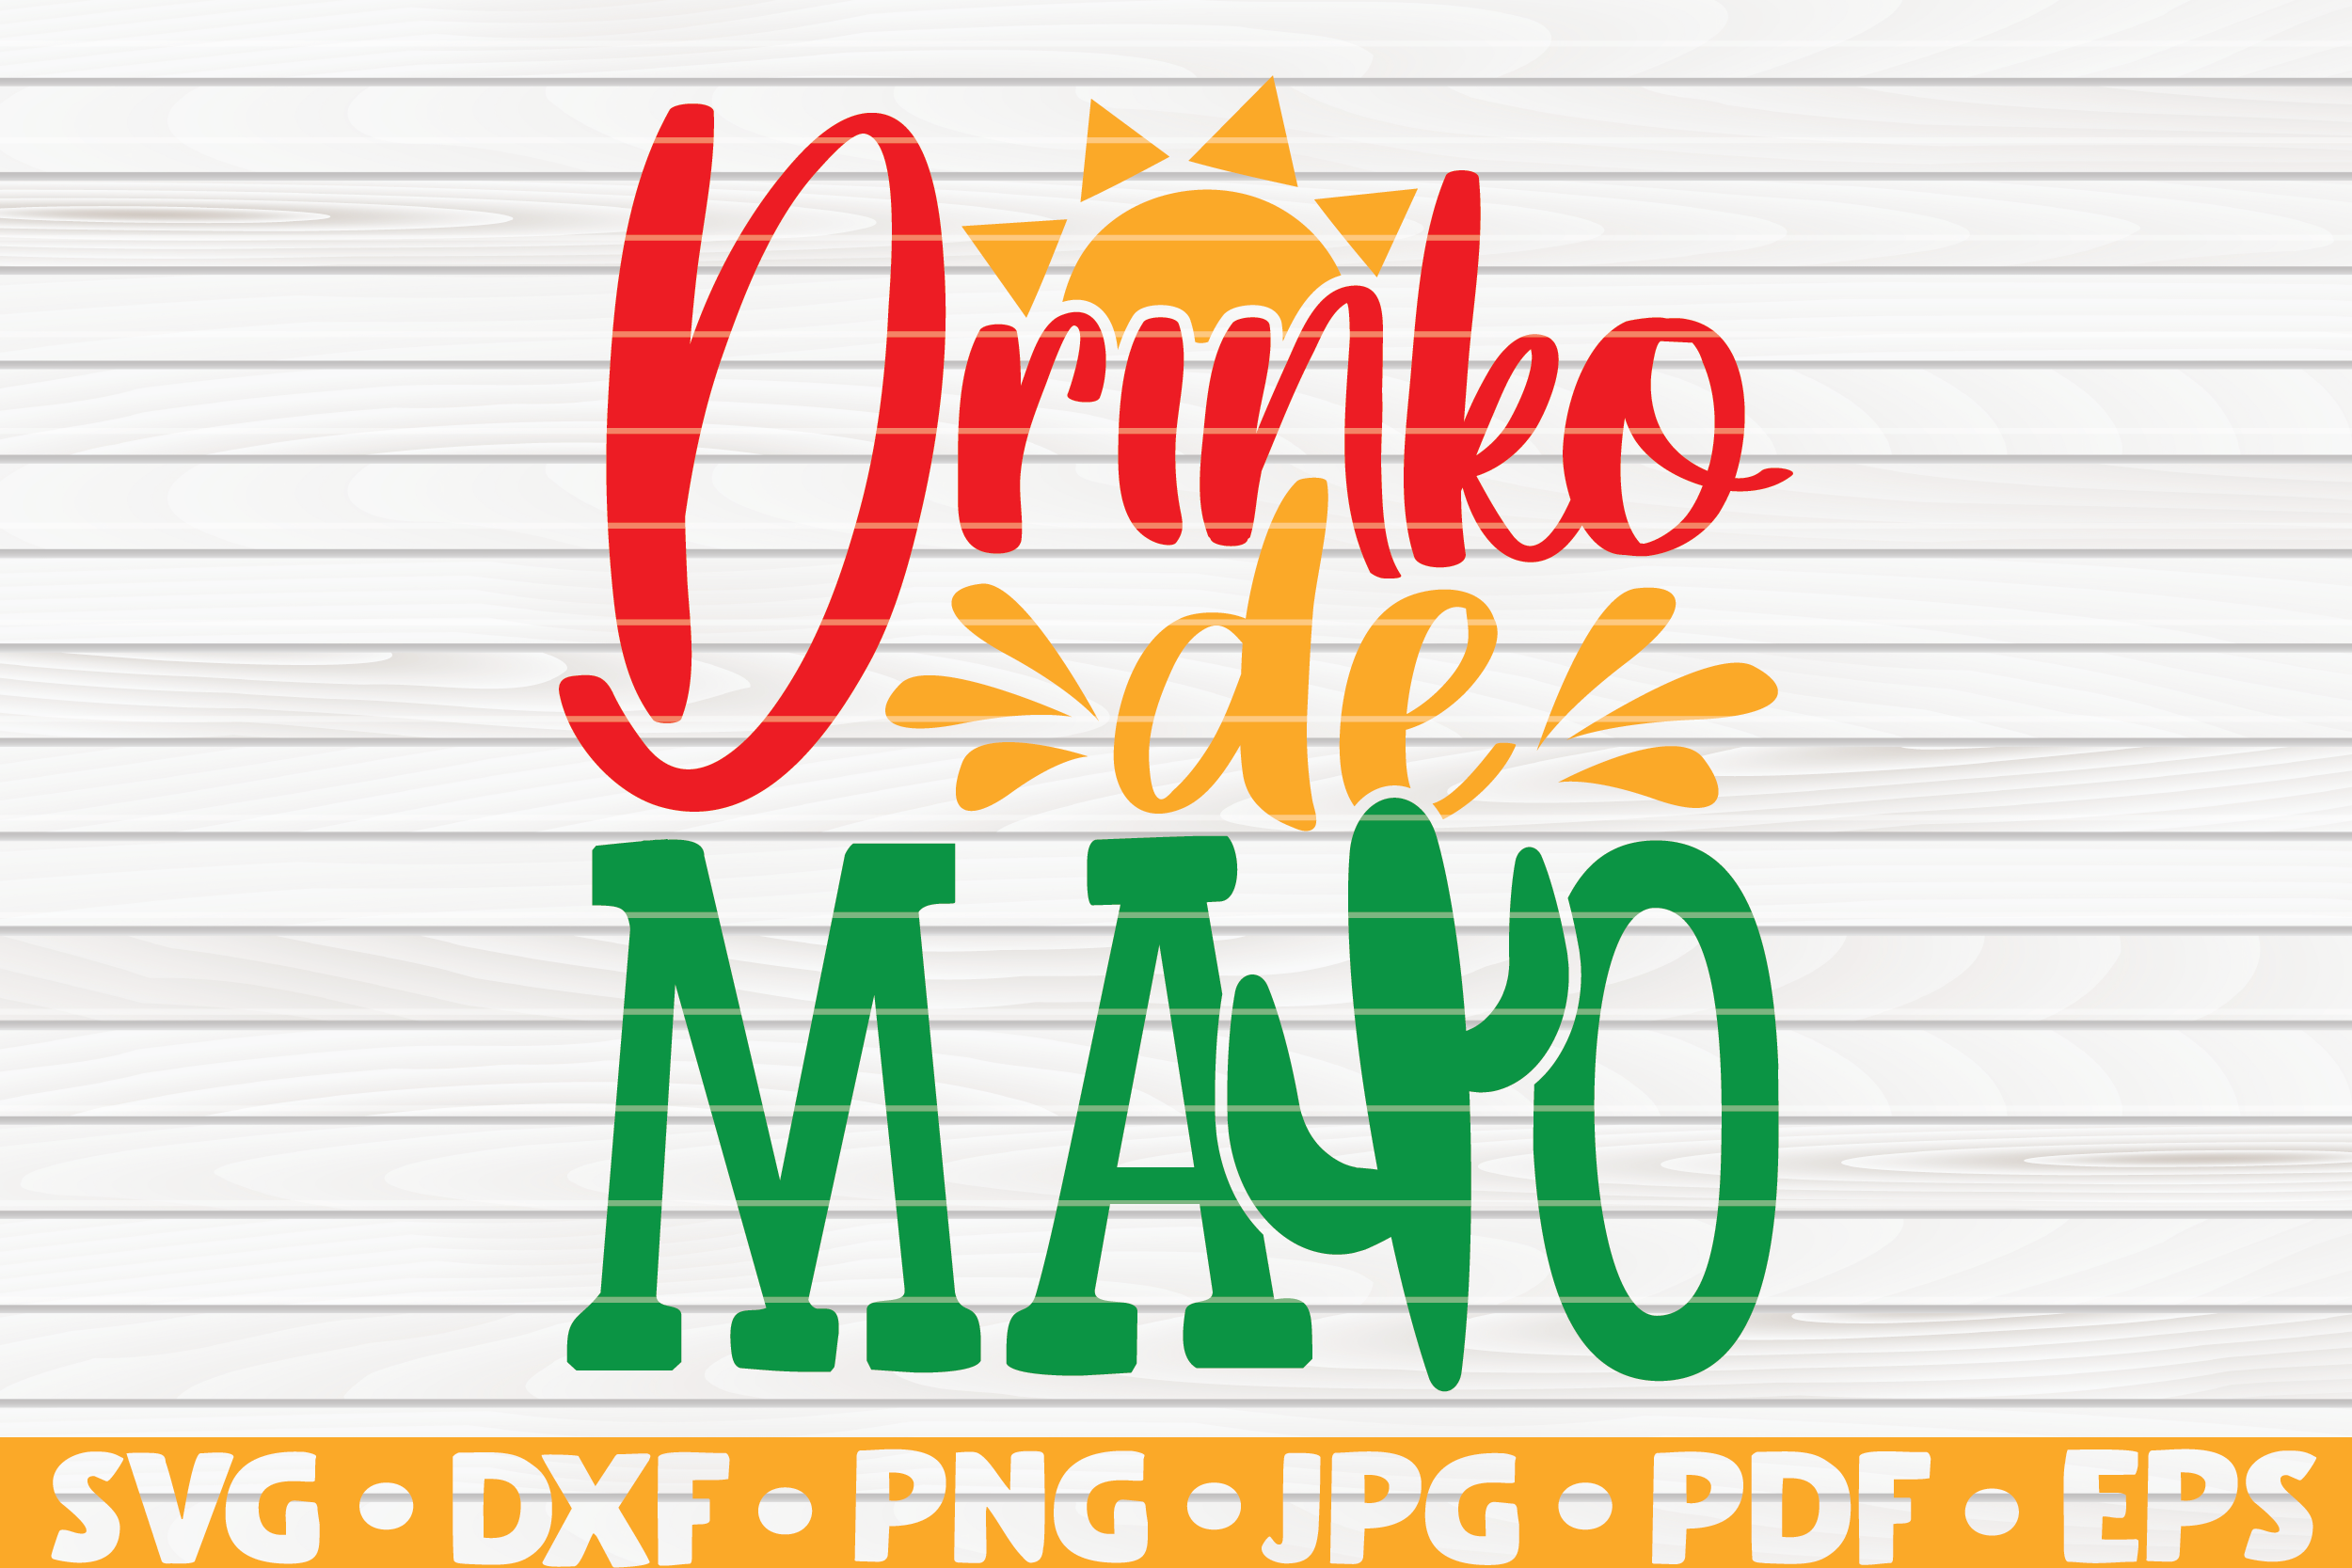 Download Free Drinko De Mayo Cinco De Mayo Graphic By Mihaibadea95 for Cricut Explore, Silhouette and other cutting machines.